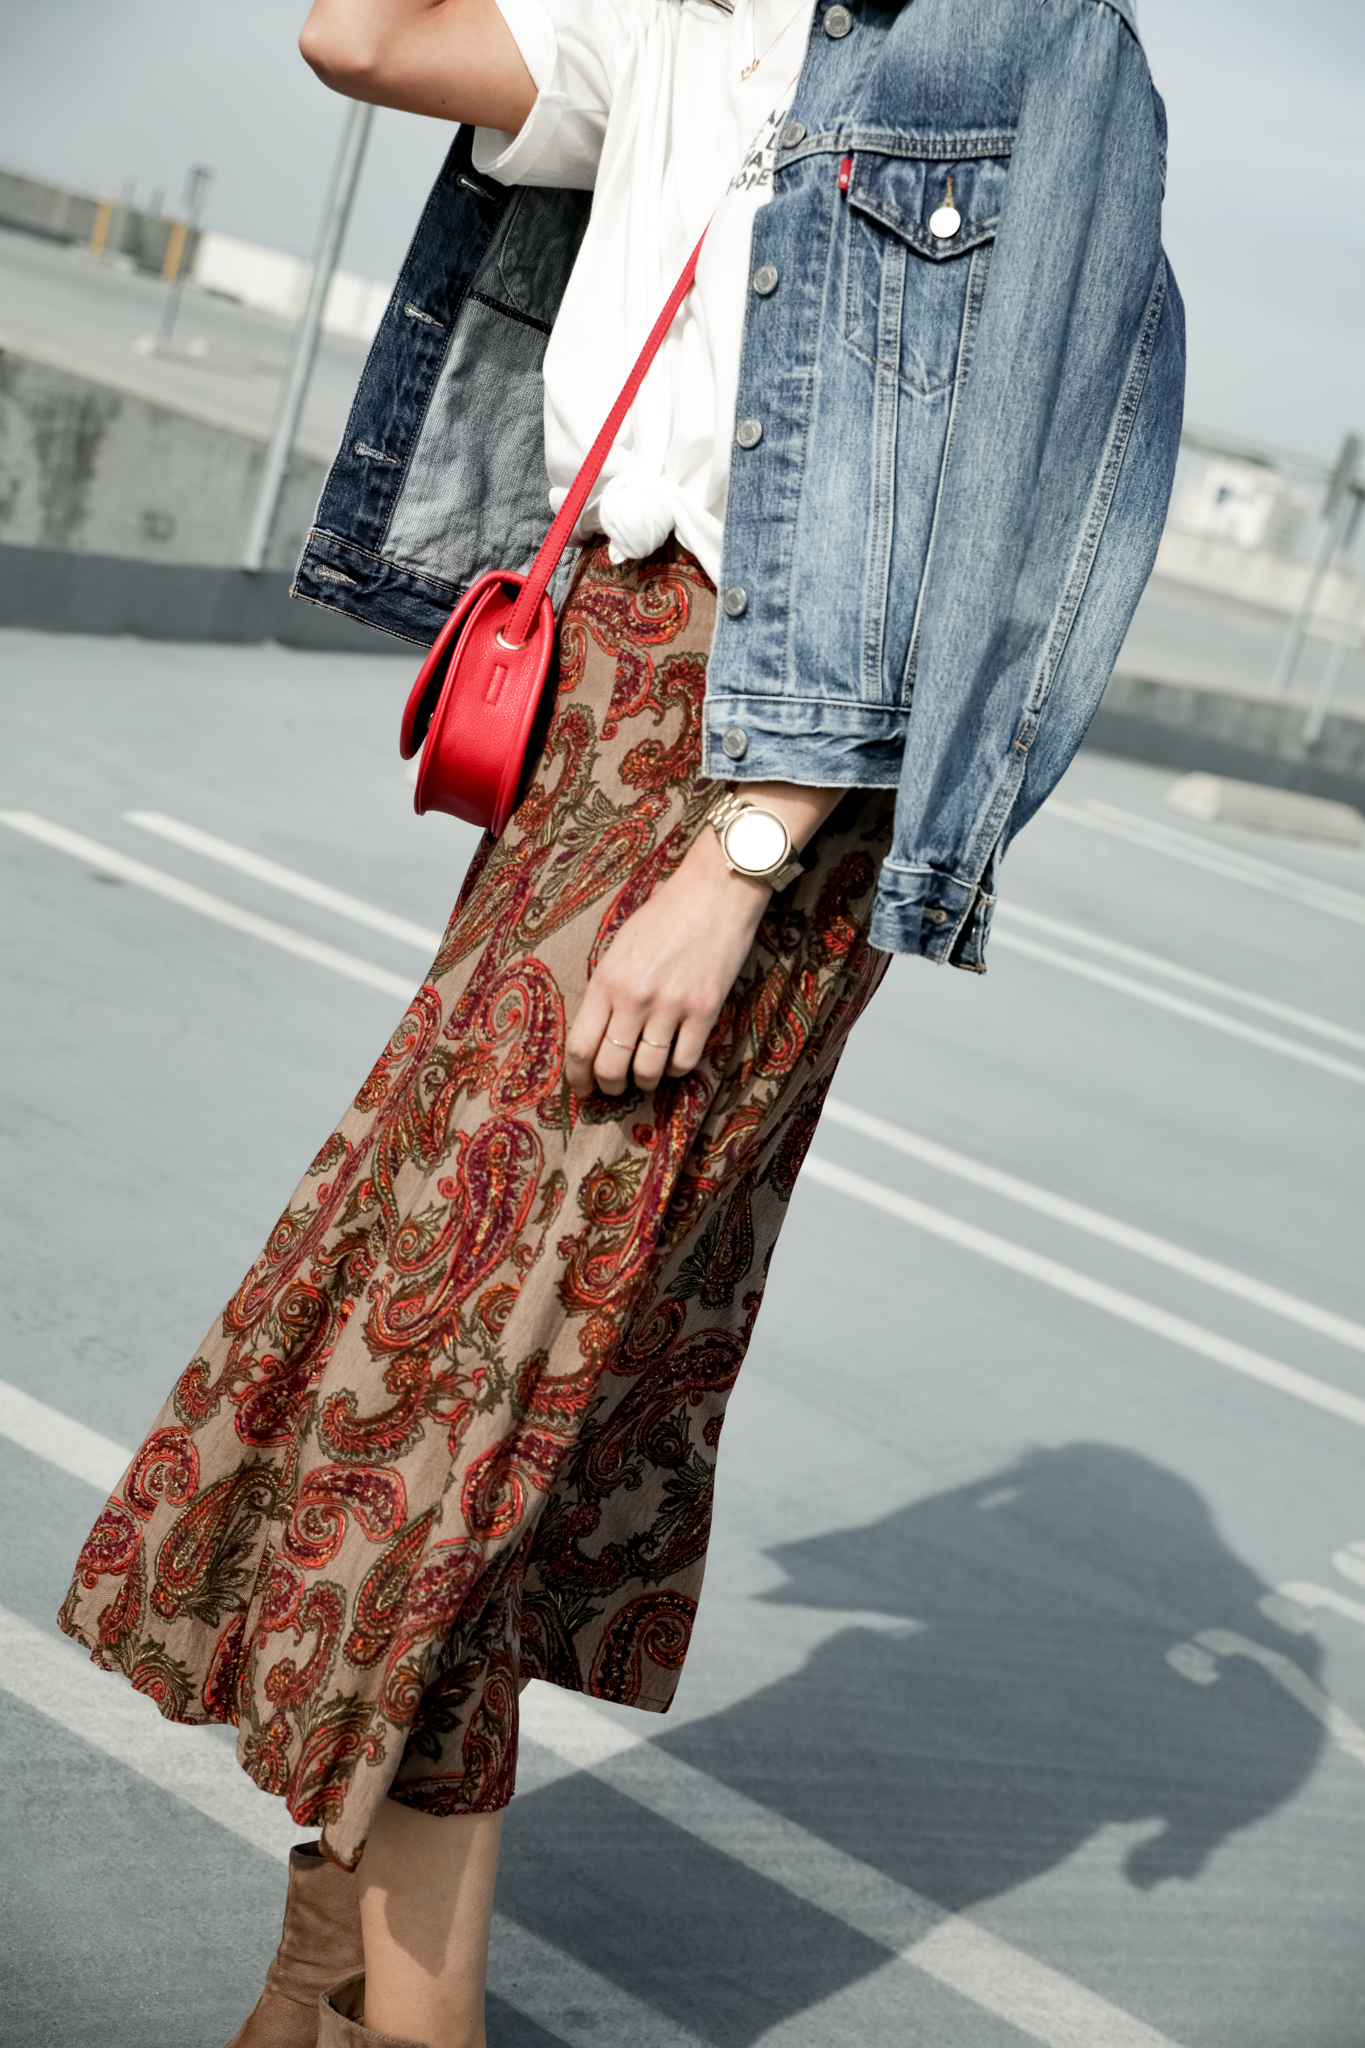 - 3. Forever 21 Floral midi skirt - knotted up, Rebels taupe ankle boots, red crossbody, staple jewels, Levis jean jacket